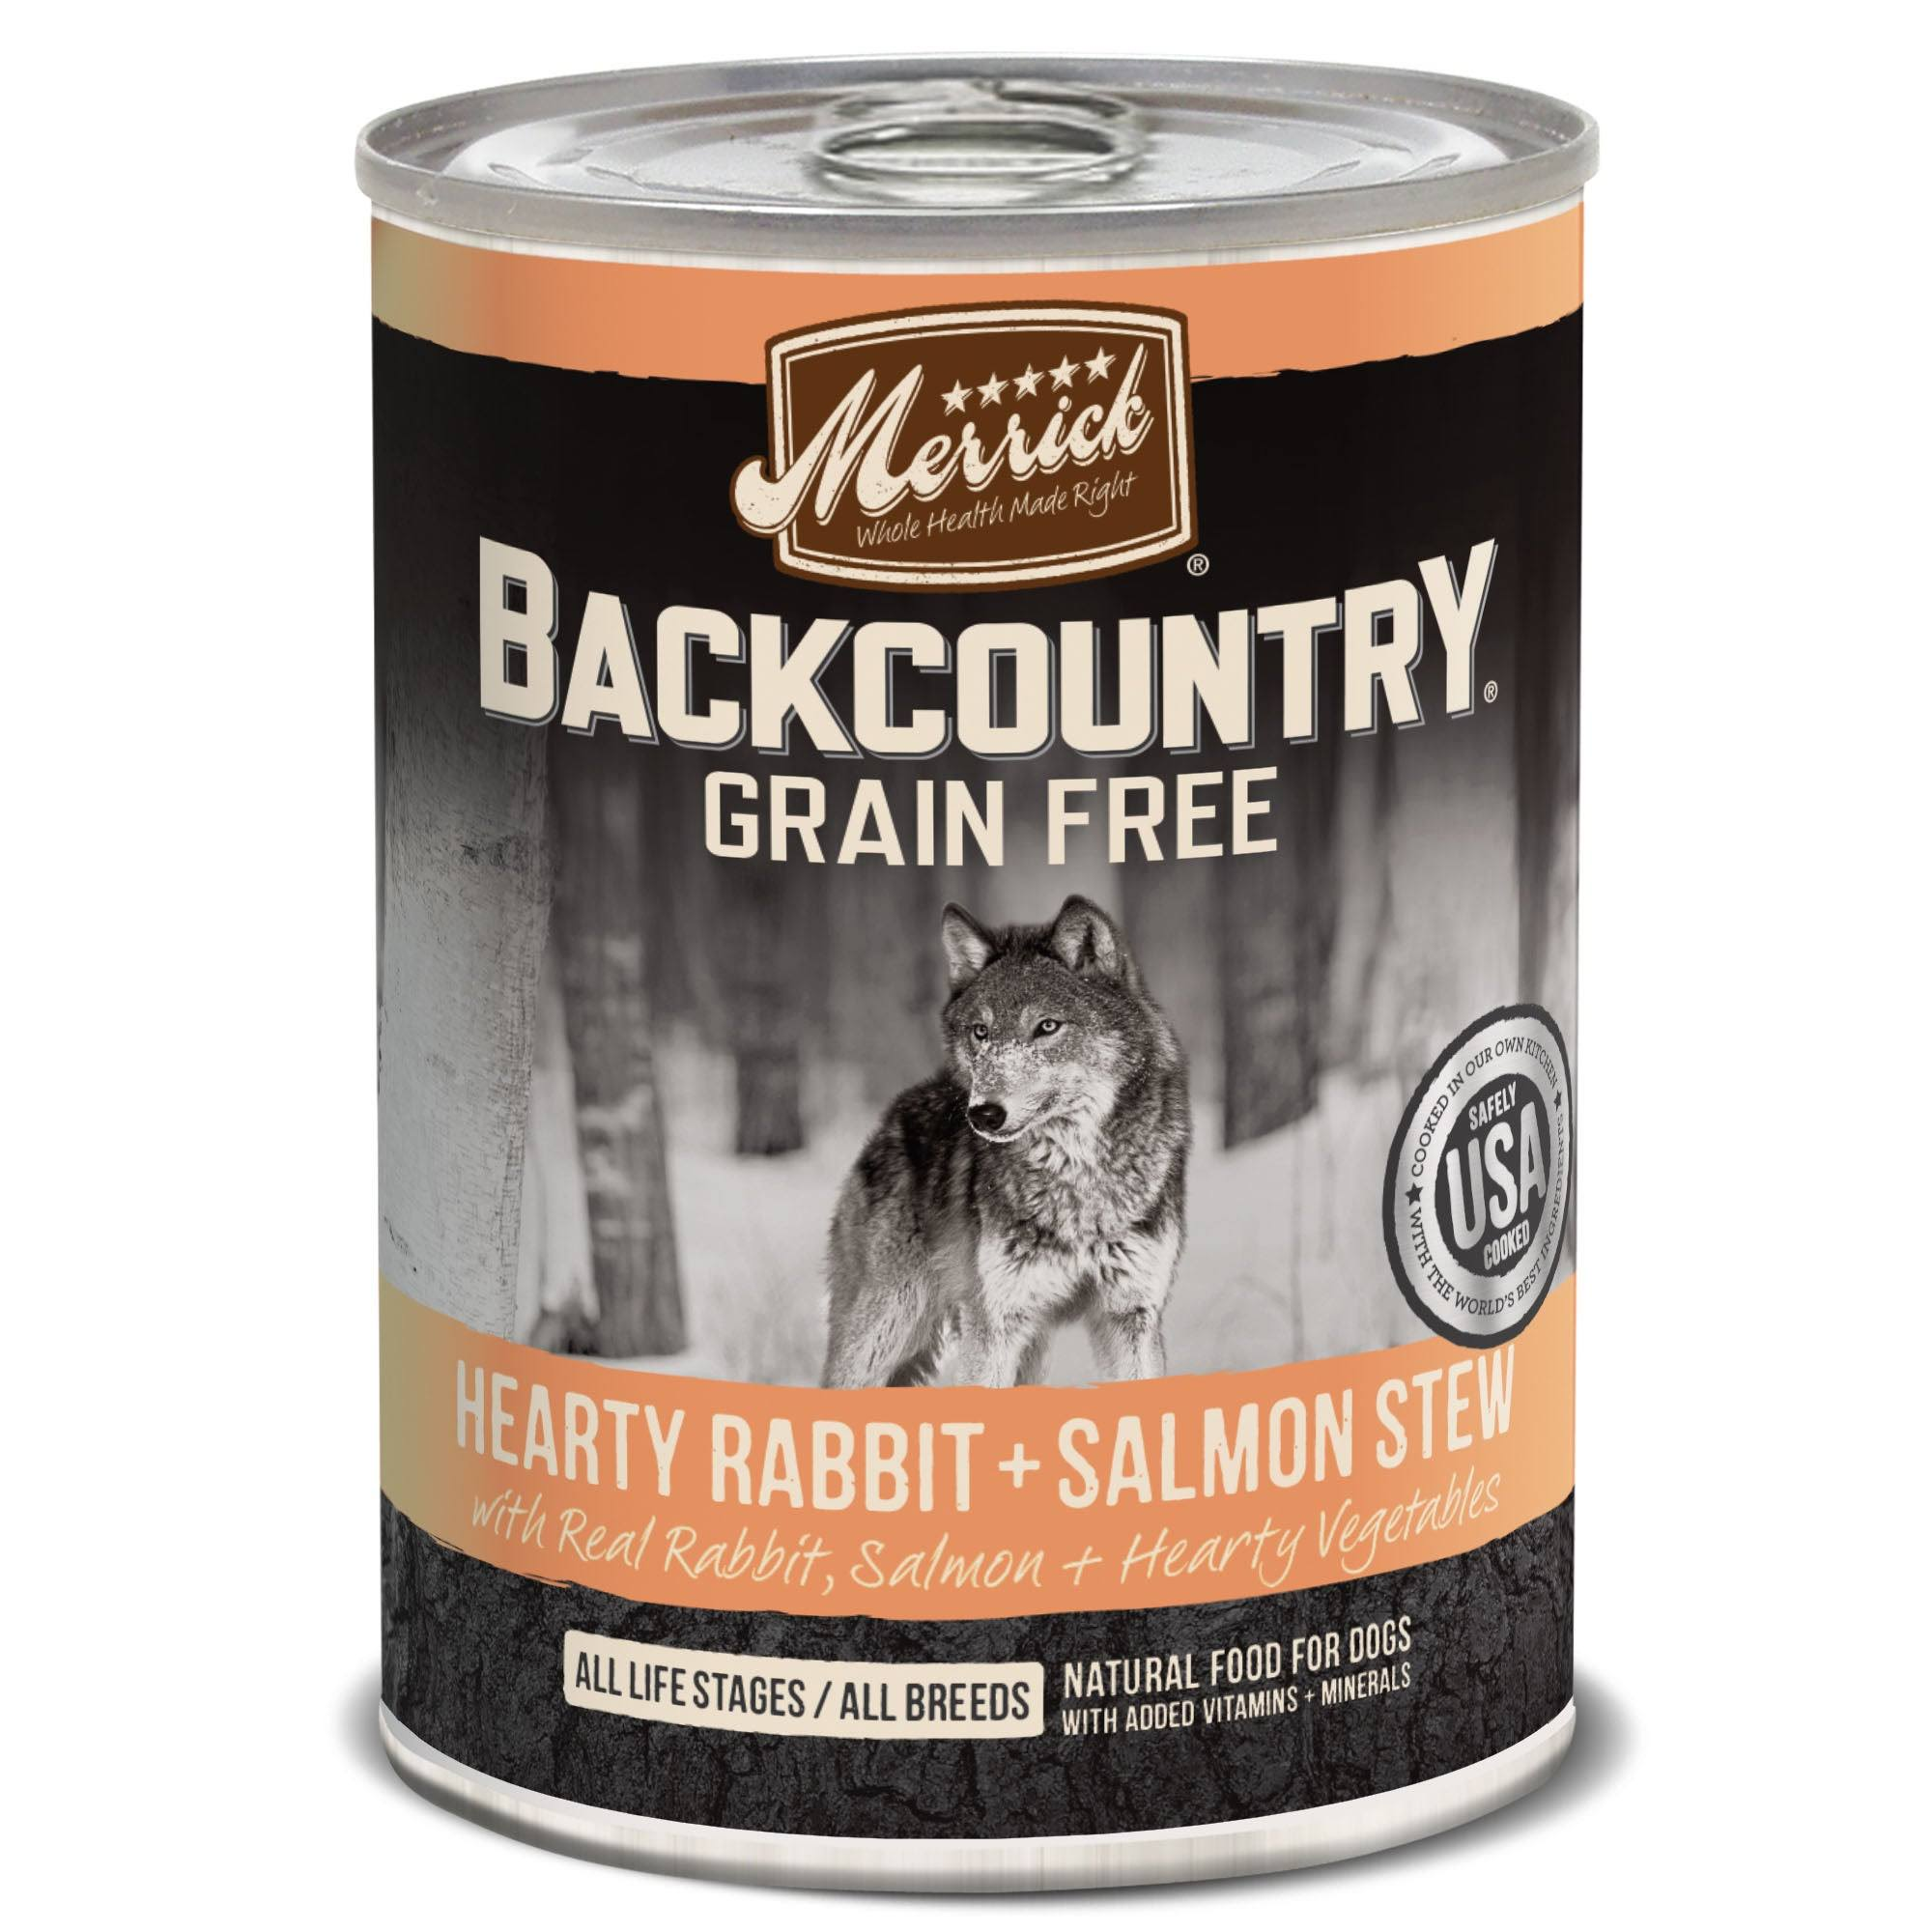 Merrick Backcountry Hearty Rabbit & Salmon Stew Canned Dog Food